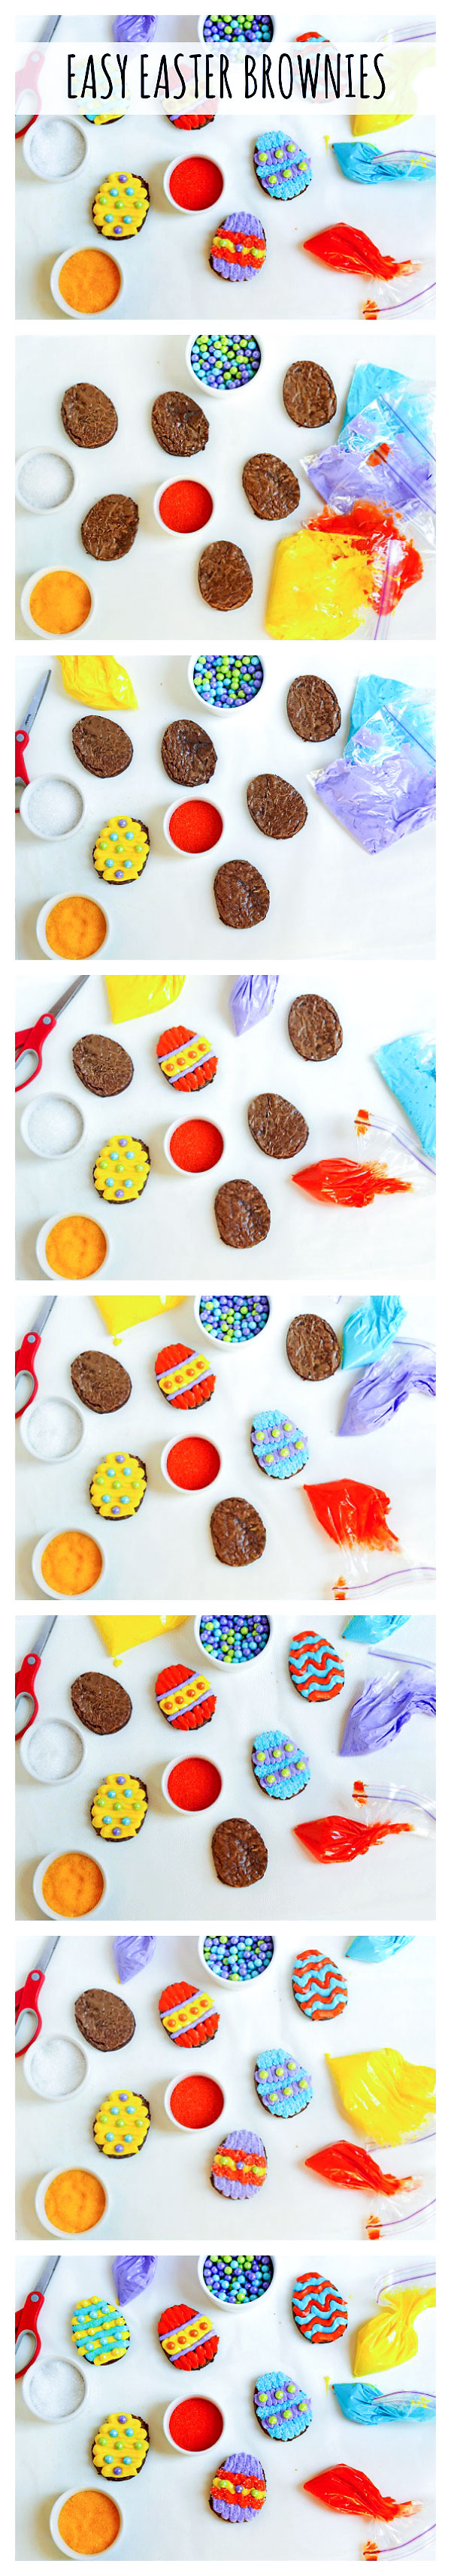 Easy-Easter-Egg-Brownies-From-a-Mix-via-thebearfootbaker.com_